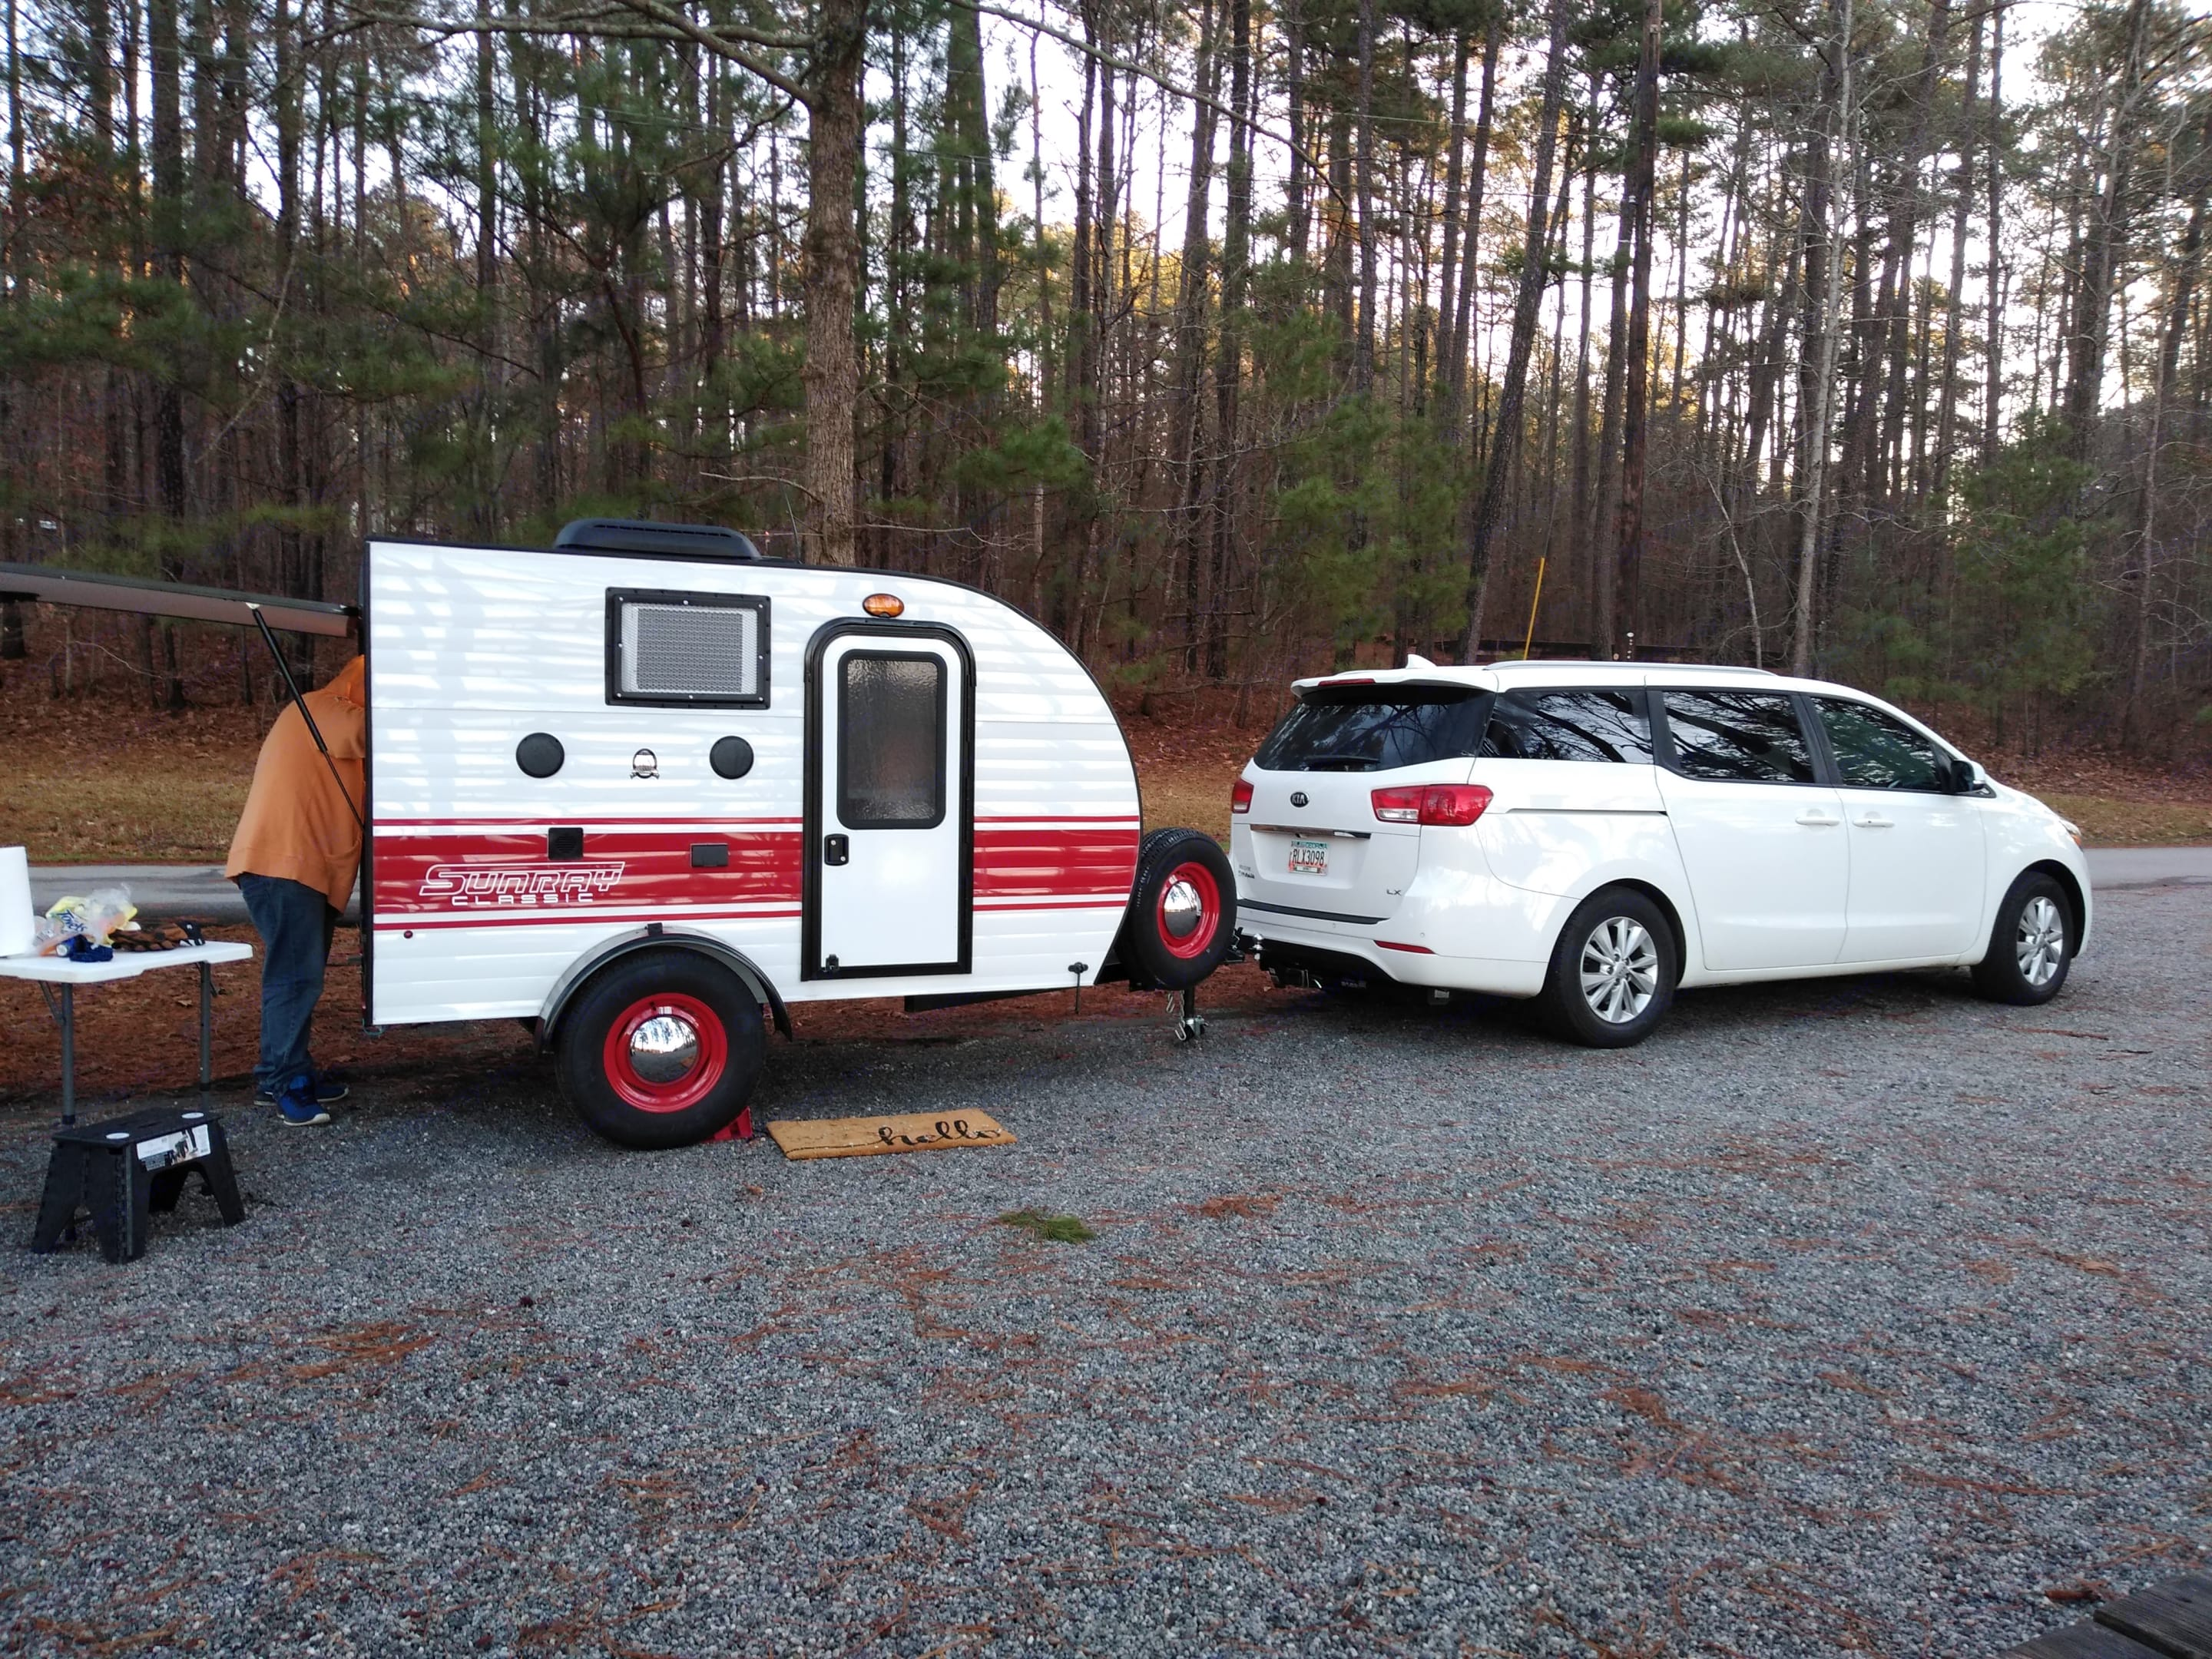 Tiny teardrop rental. All inclusive. All supplies fit neatly in this darling camper. All you need to pack is your sleeping bag, pillow, clothes and food. . Sunset Park & Rv Inc. Other 2019